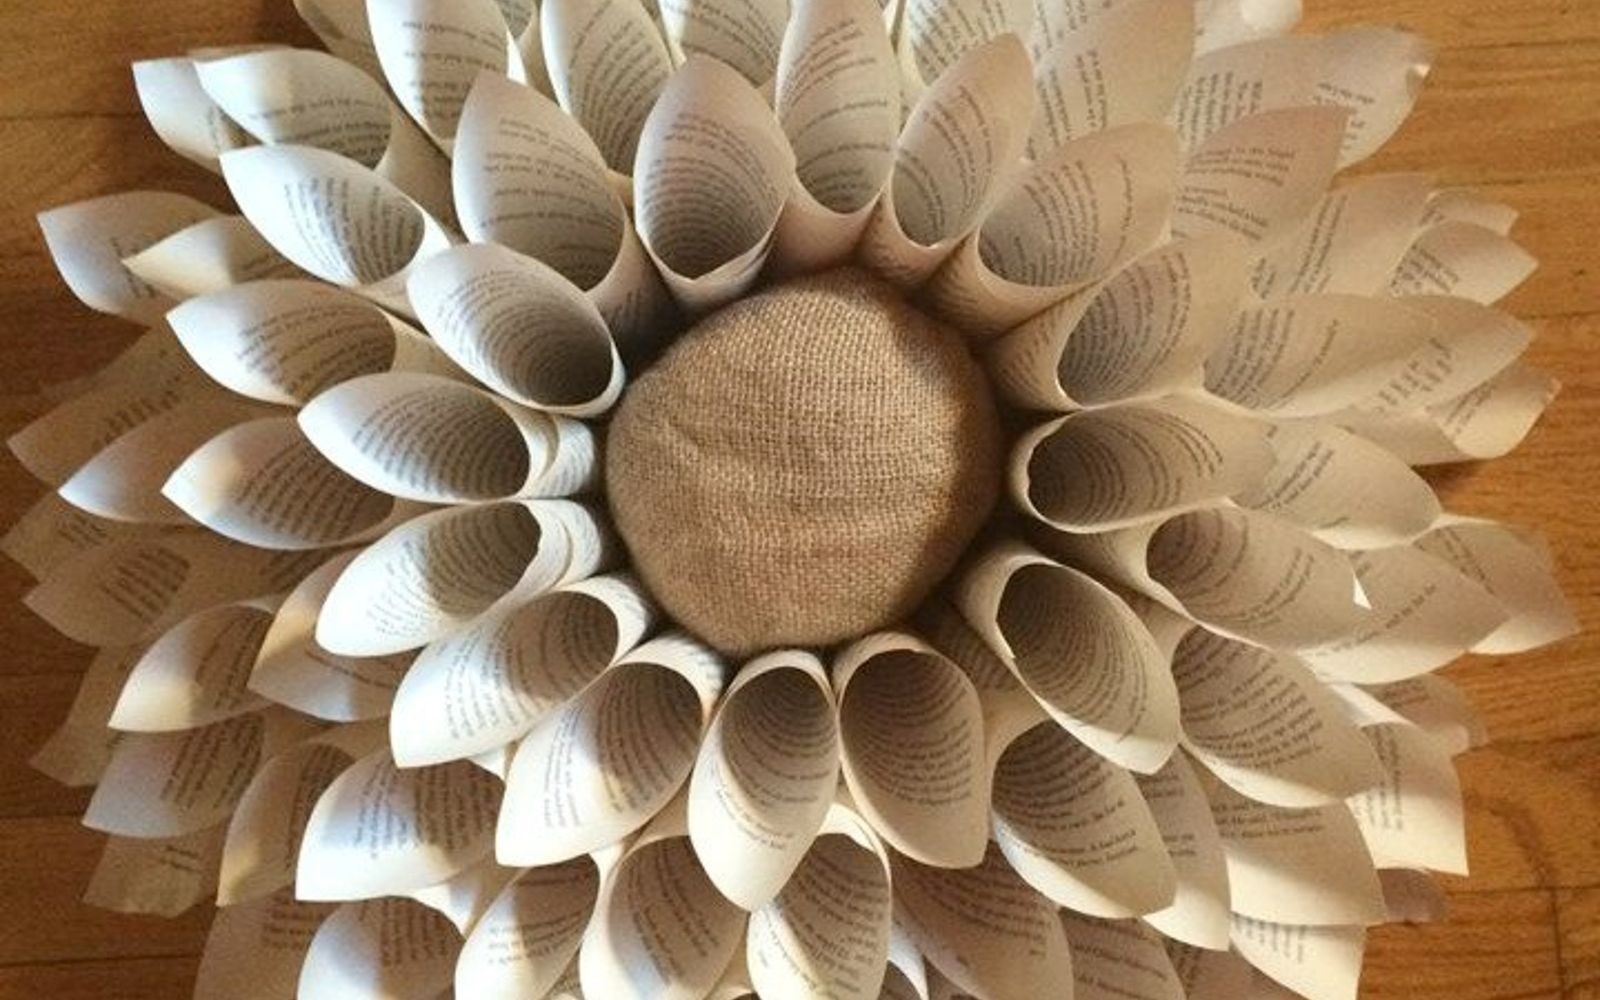 s 15 brilliant ways to reuse your empty cardboard boxes, home decor, repurposing upcycling, Use It to Start a Book Page Wreath